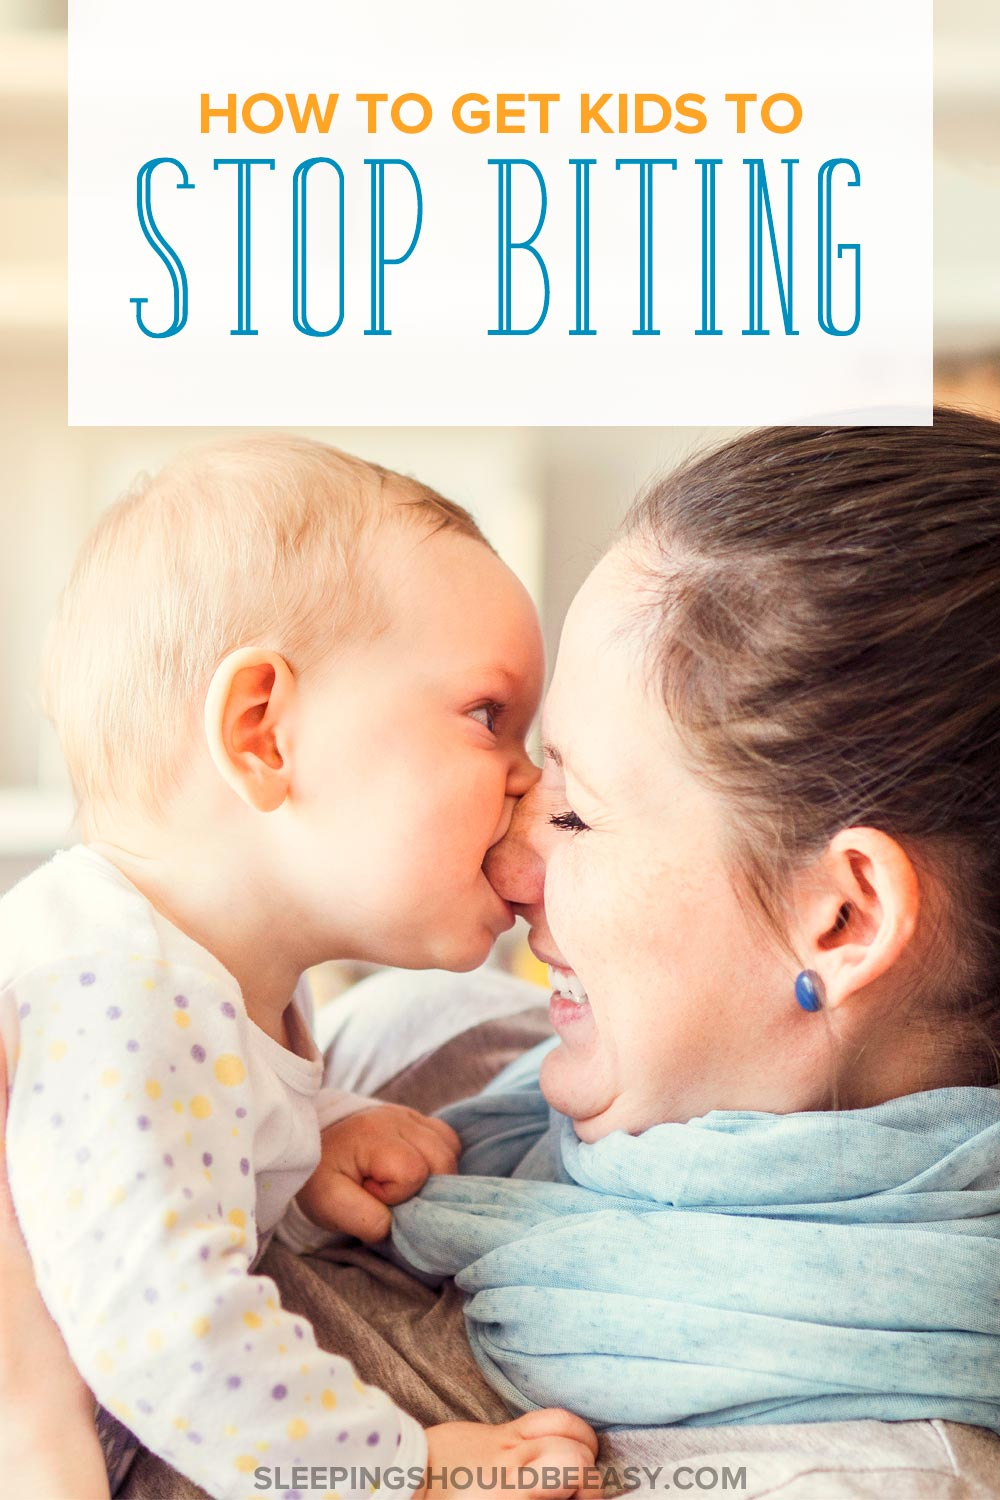 Have you found your child biting other kids or even adults? Biting is normal, but you can still learn how to stop children biting when you apply these 6 important steps.